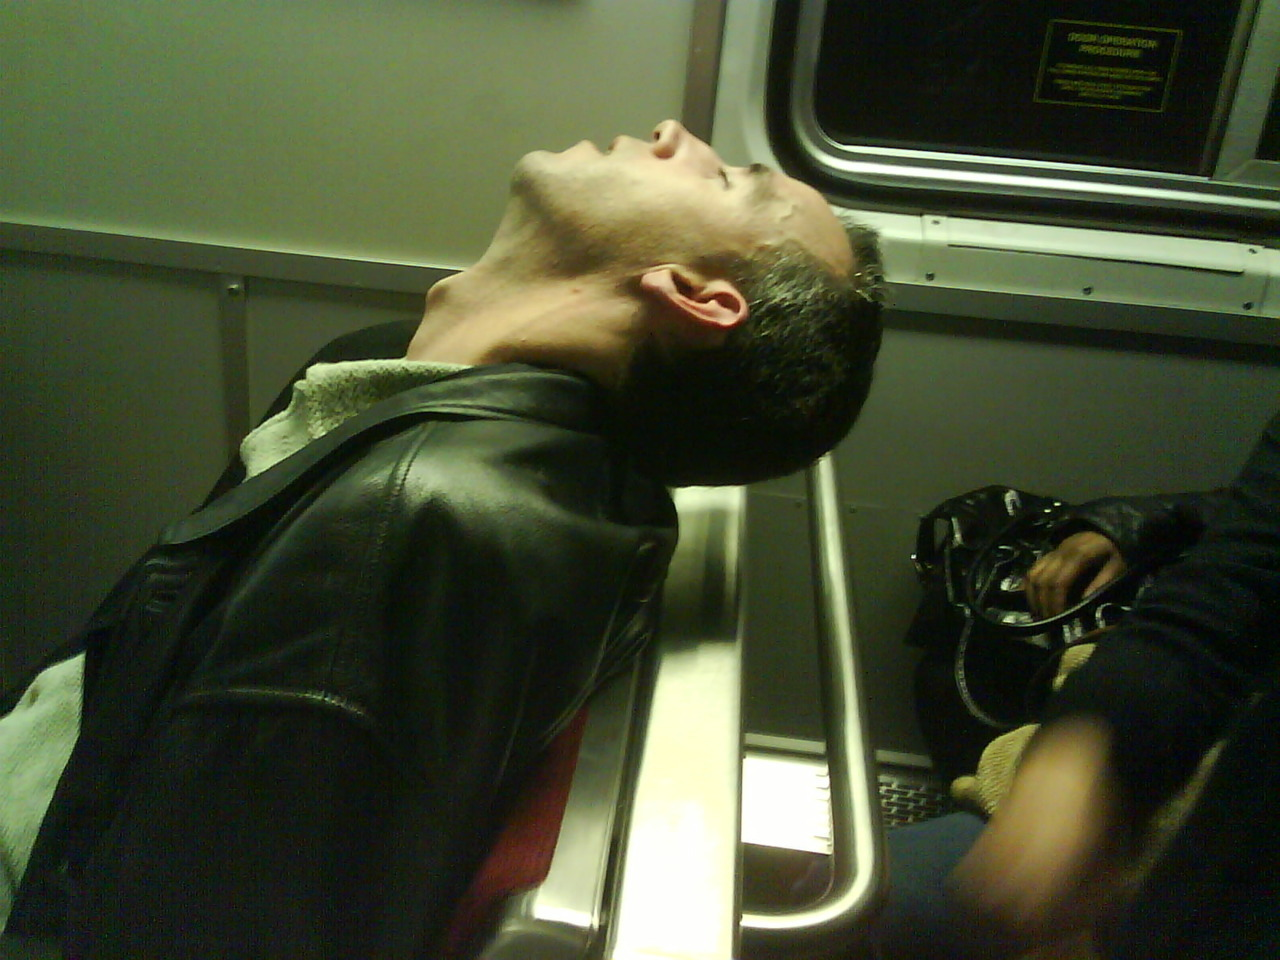 this guy was dead asleep. minutes after taking the photo,  the train braked really hard and his head slammed forward into the glass. it was so loud everyone on the train looked over. he hit it so hard, i don't know how the glass didn't break. - Submitted by Joe